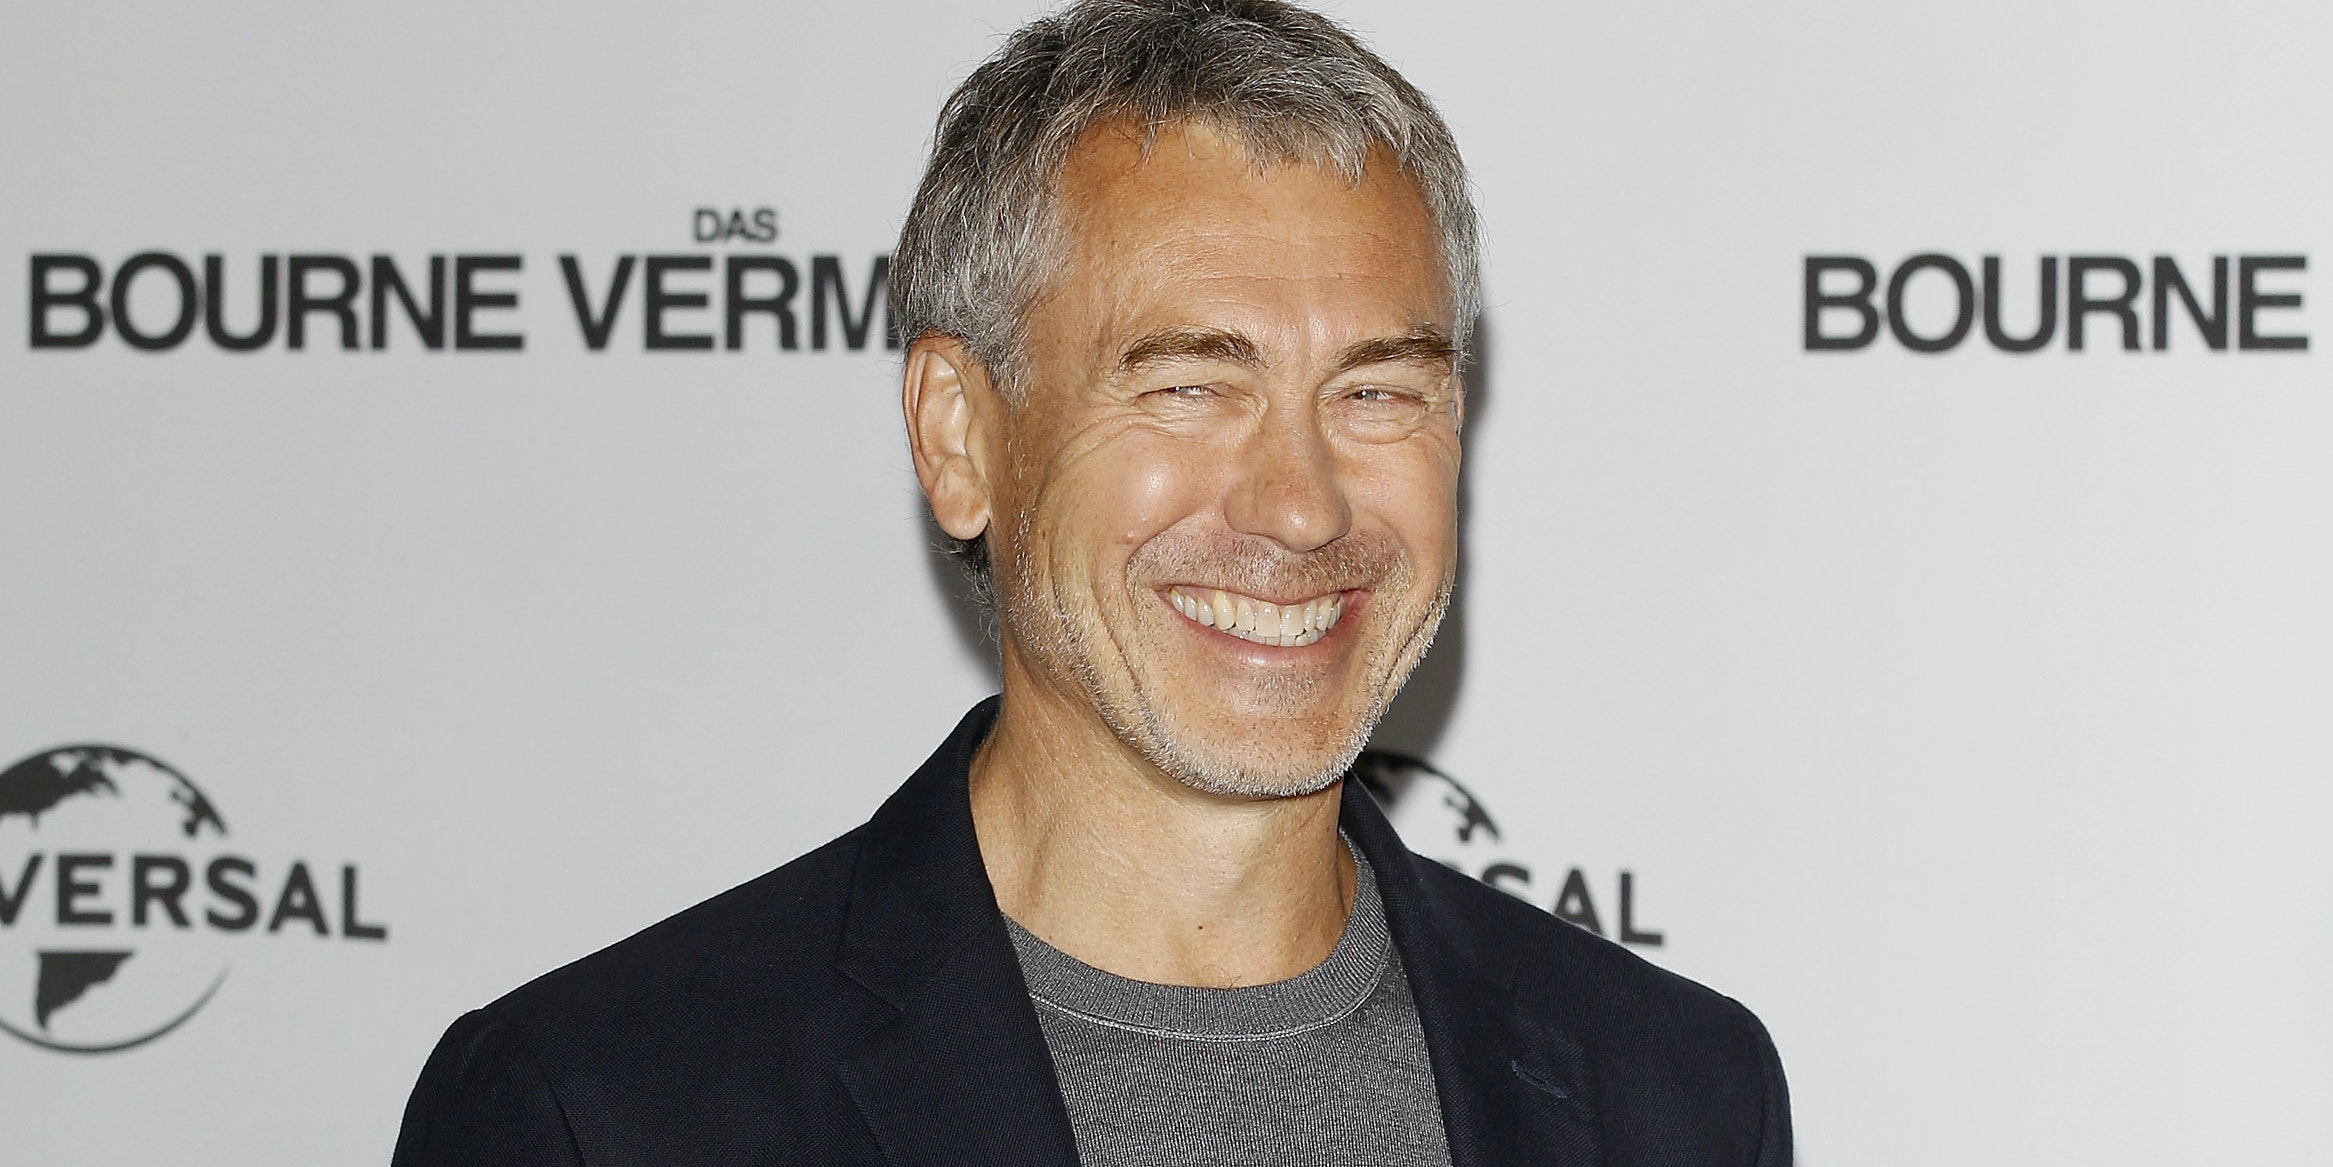 BERLIN, GERMANY - SEPTEMBER 03:  Director Tony Gilroy attendS a photocall to promote the film 'Das Bourne Vermaechtnis' (The Bourne Legacy) at Ritz Carlton on September 3, 2012 in Berlin, Germany.  (Photo by Andreas Rentz/Getty Images)